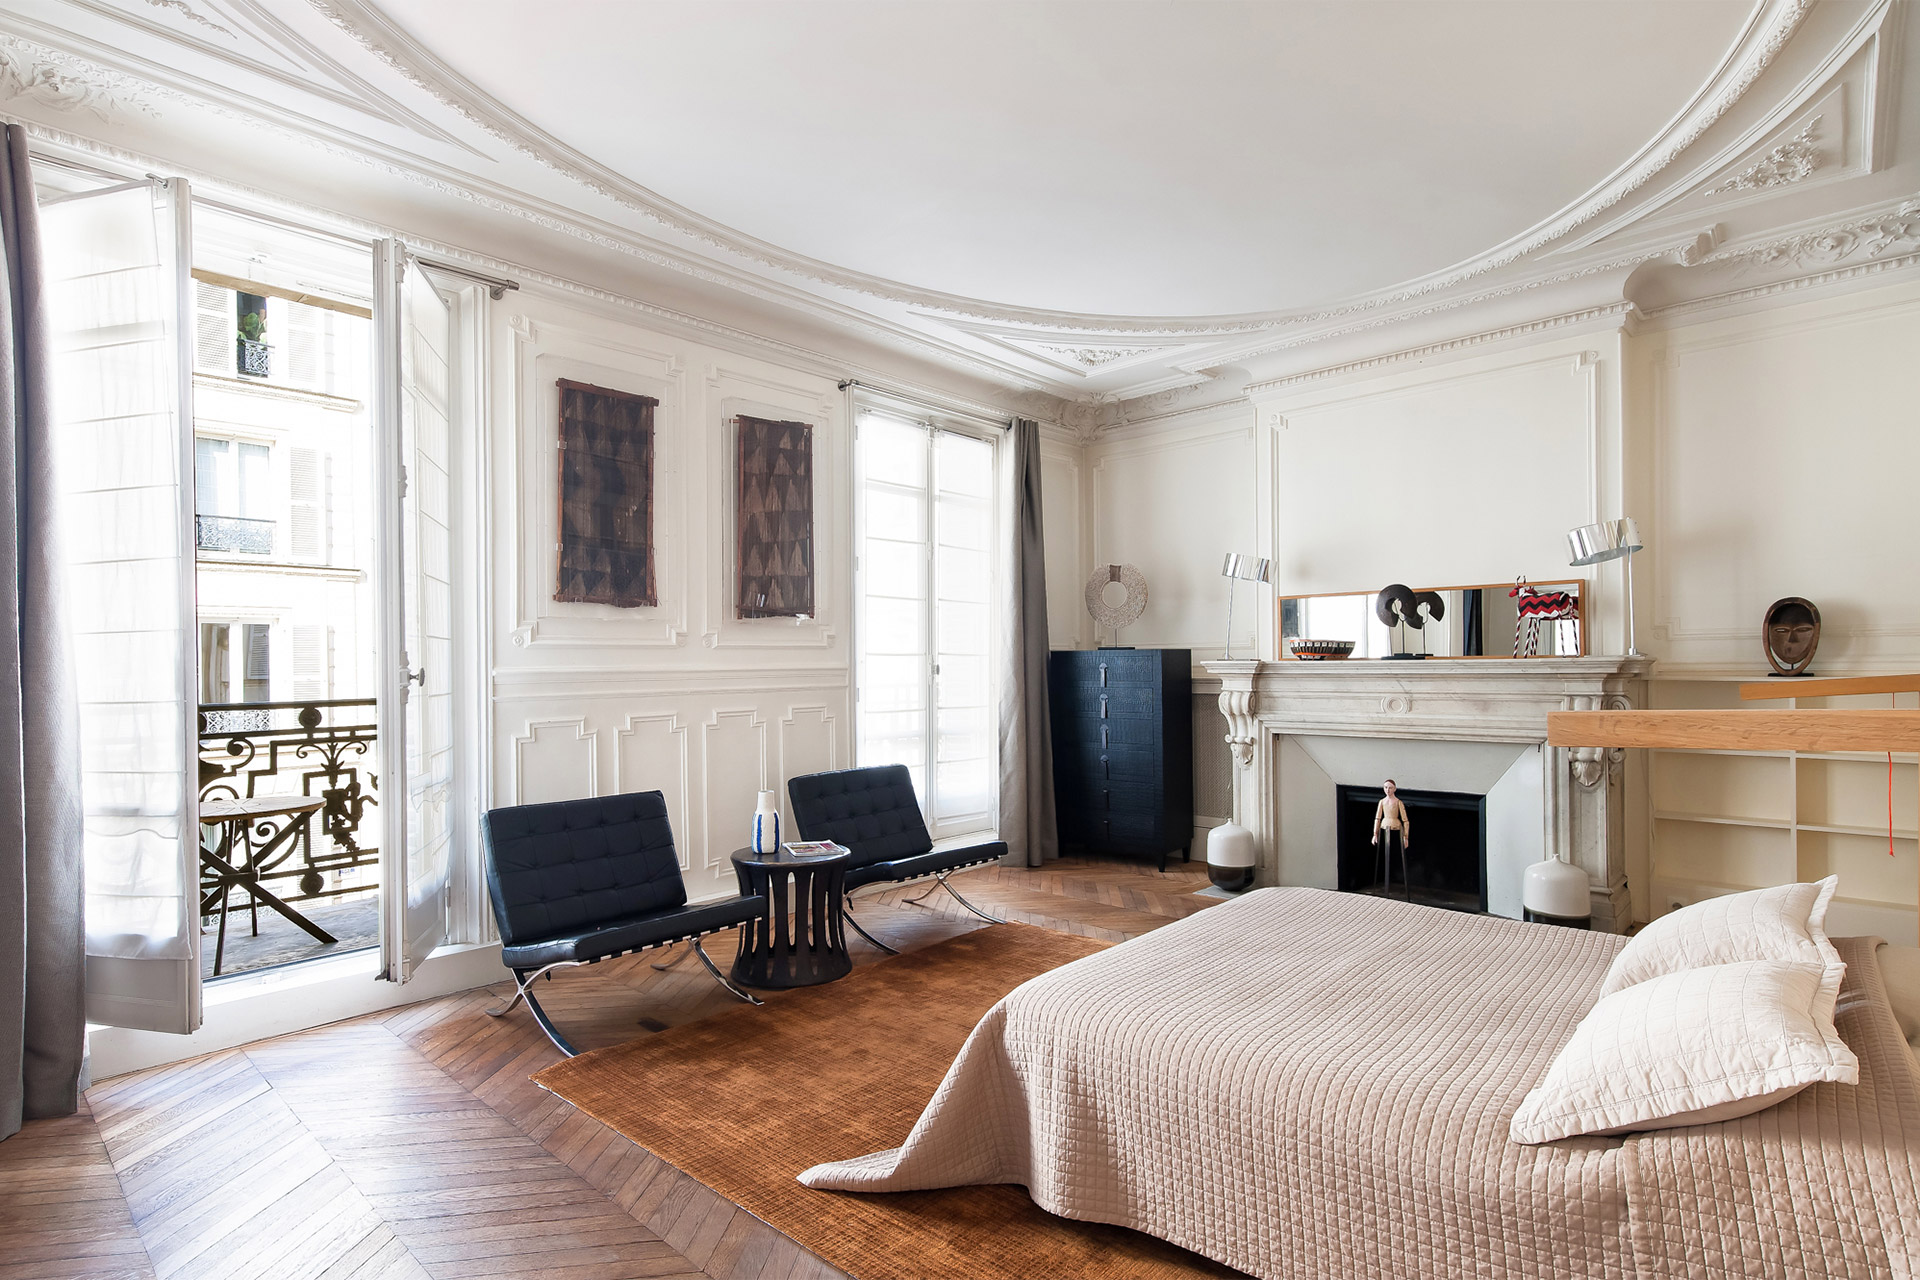 Grand second bedroom with an extra wide queen bed in the Cavailles Paris rental